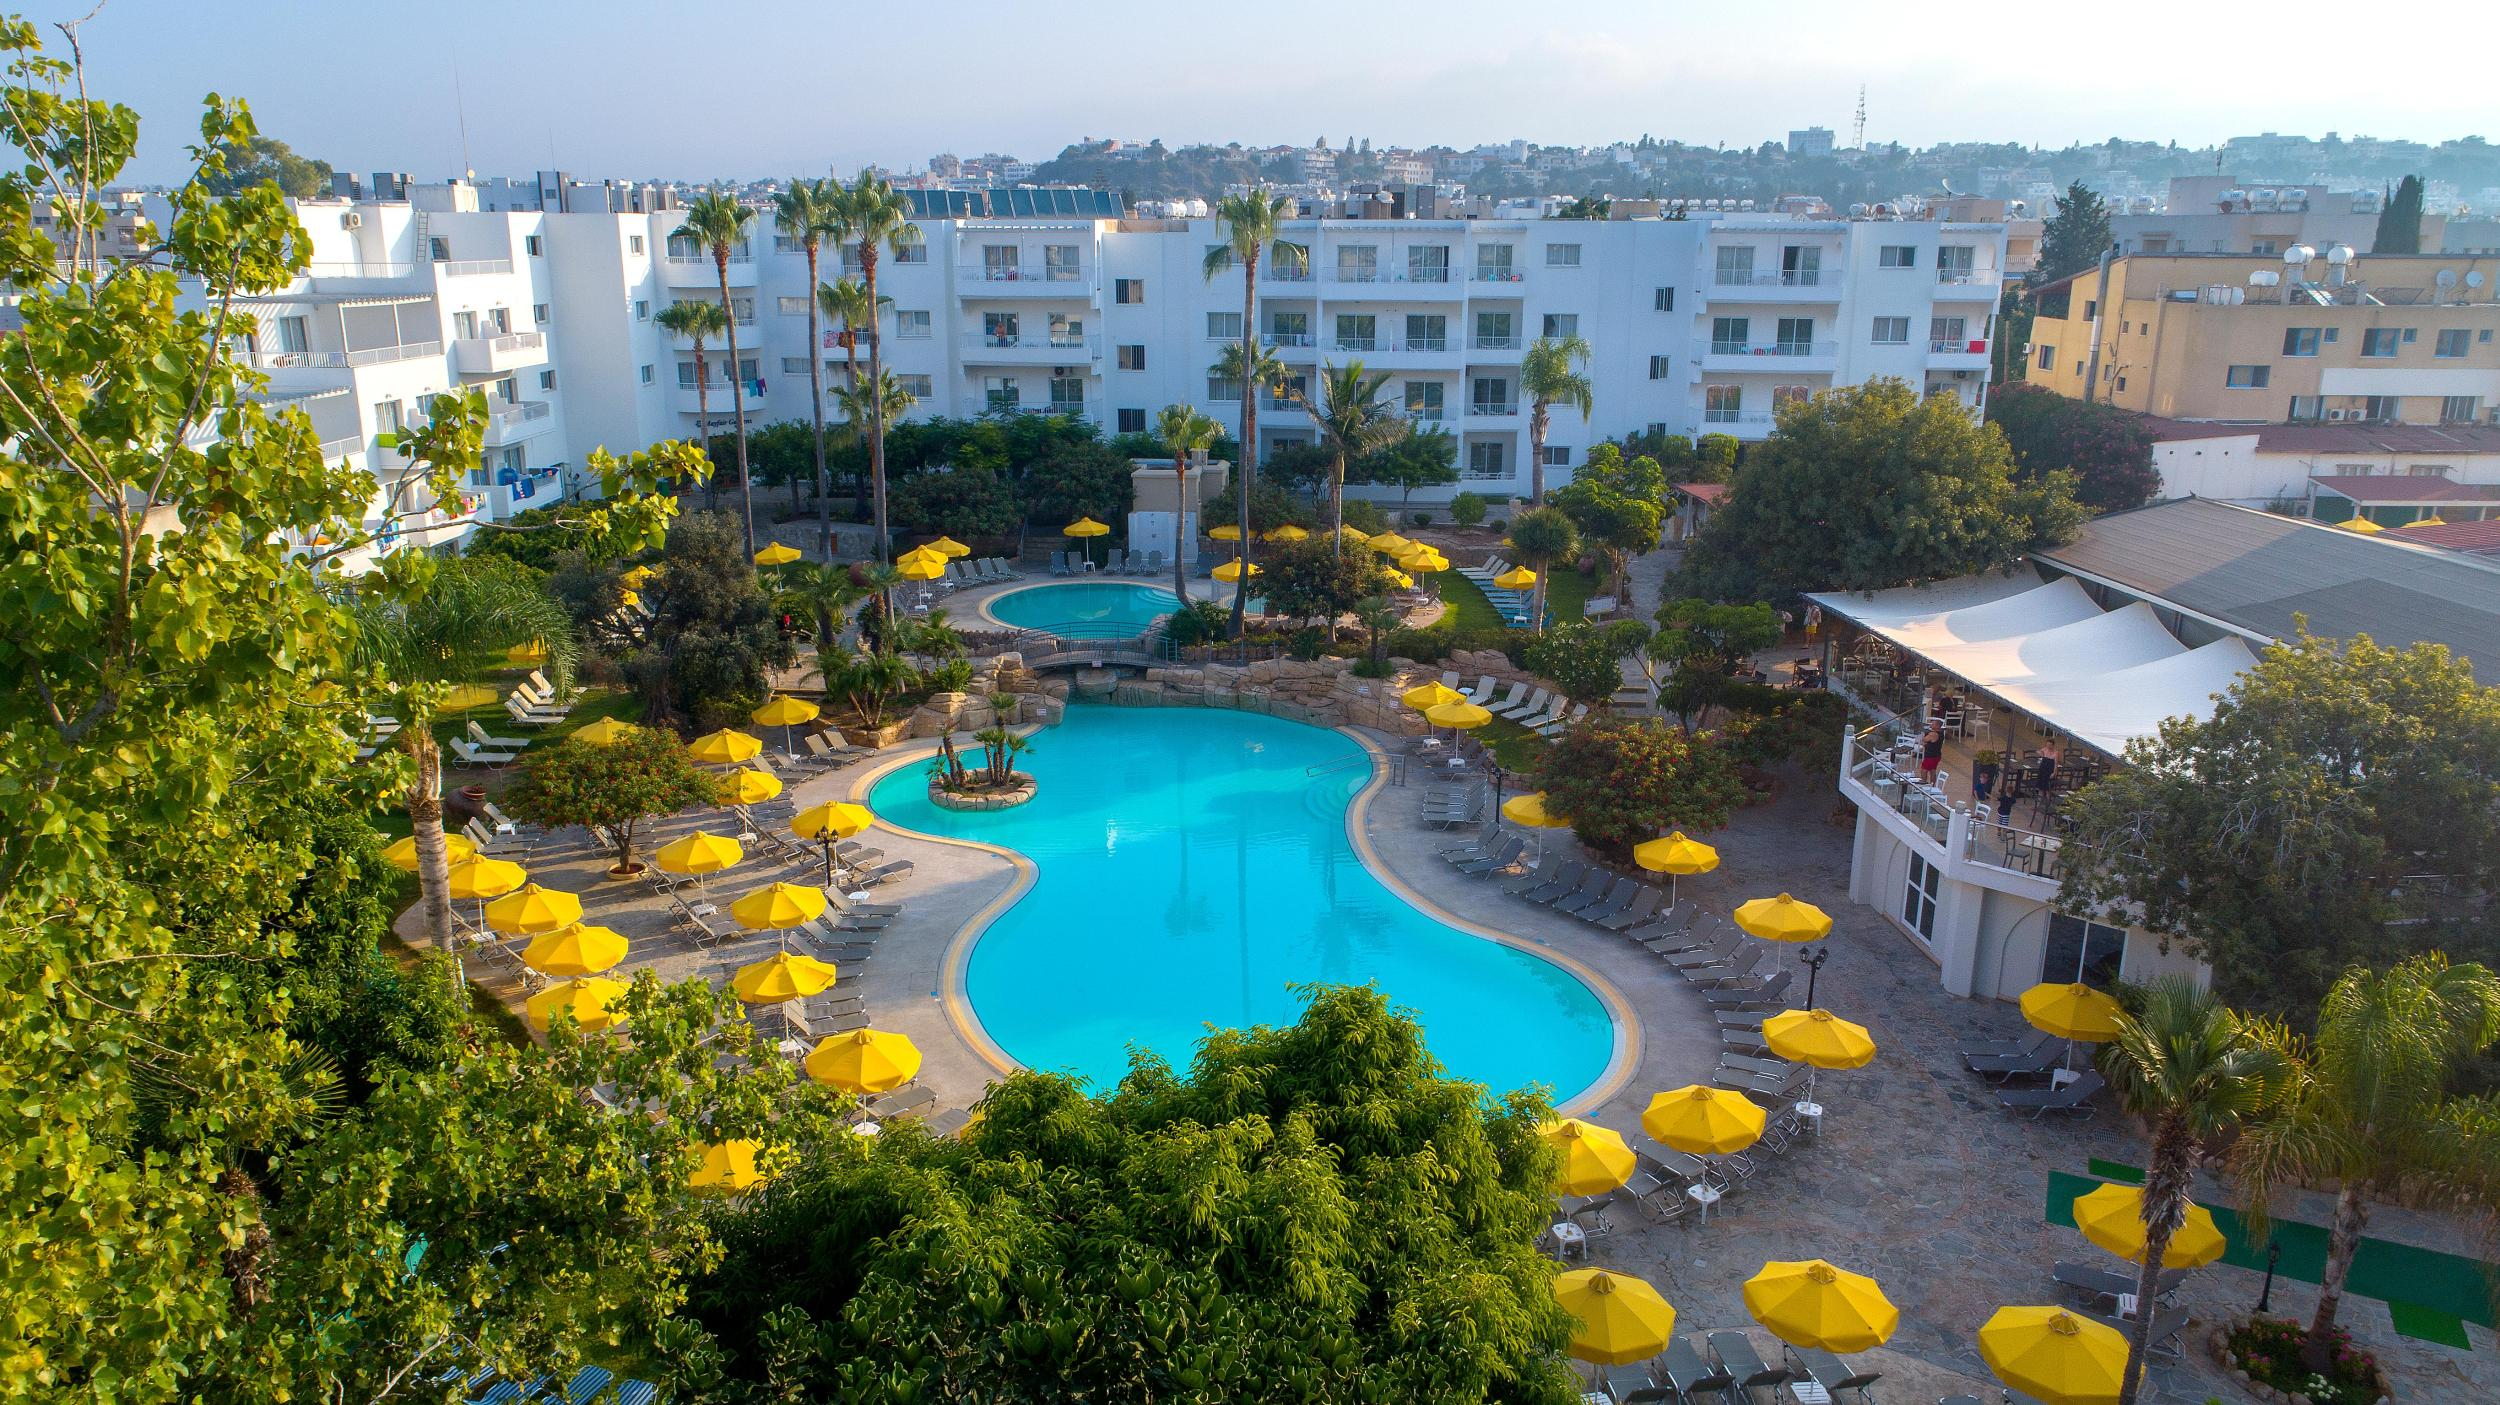 Mayfair Gardens in Paphos, Cyprus